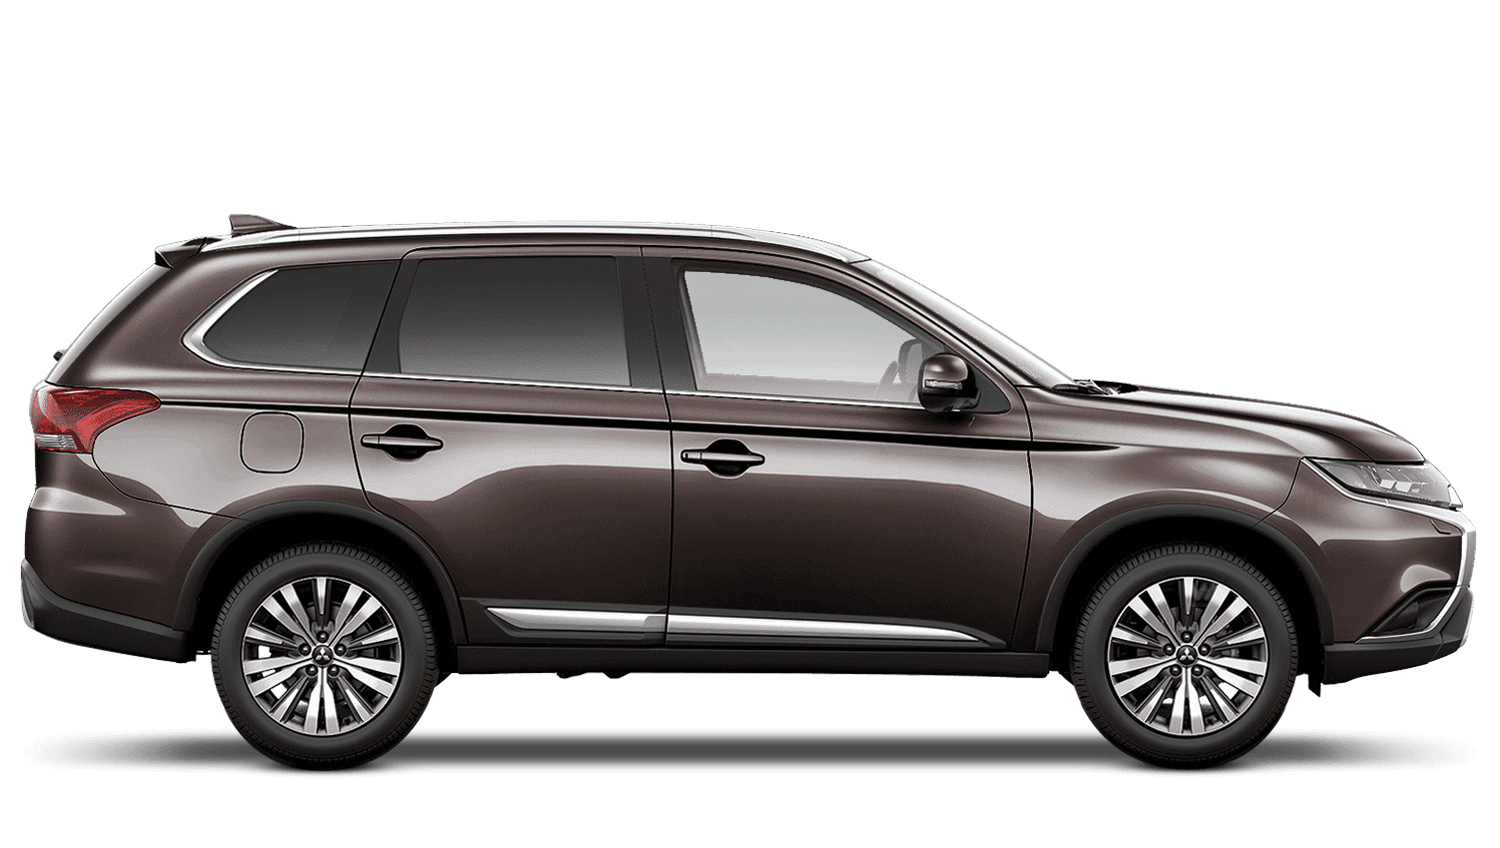 Granite Brown Mitsubishi Outlander